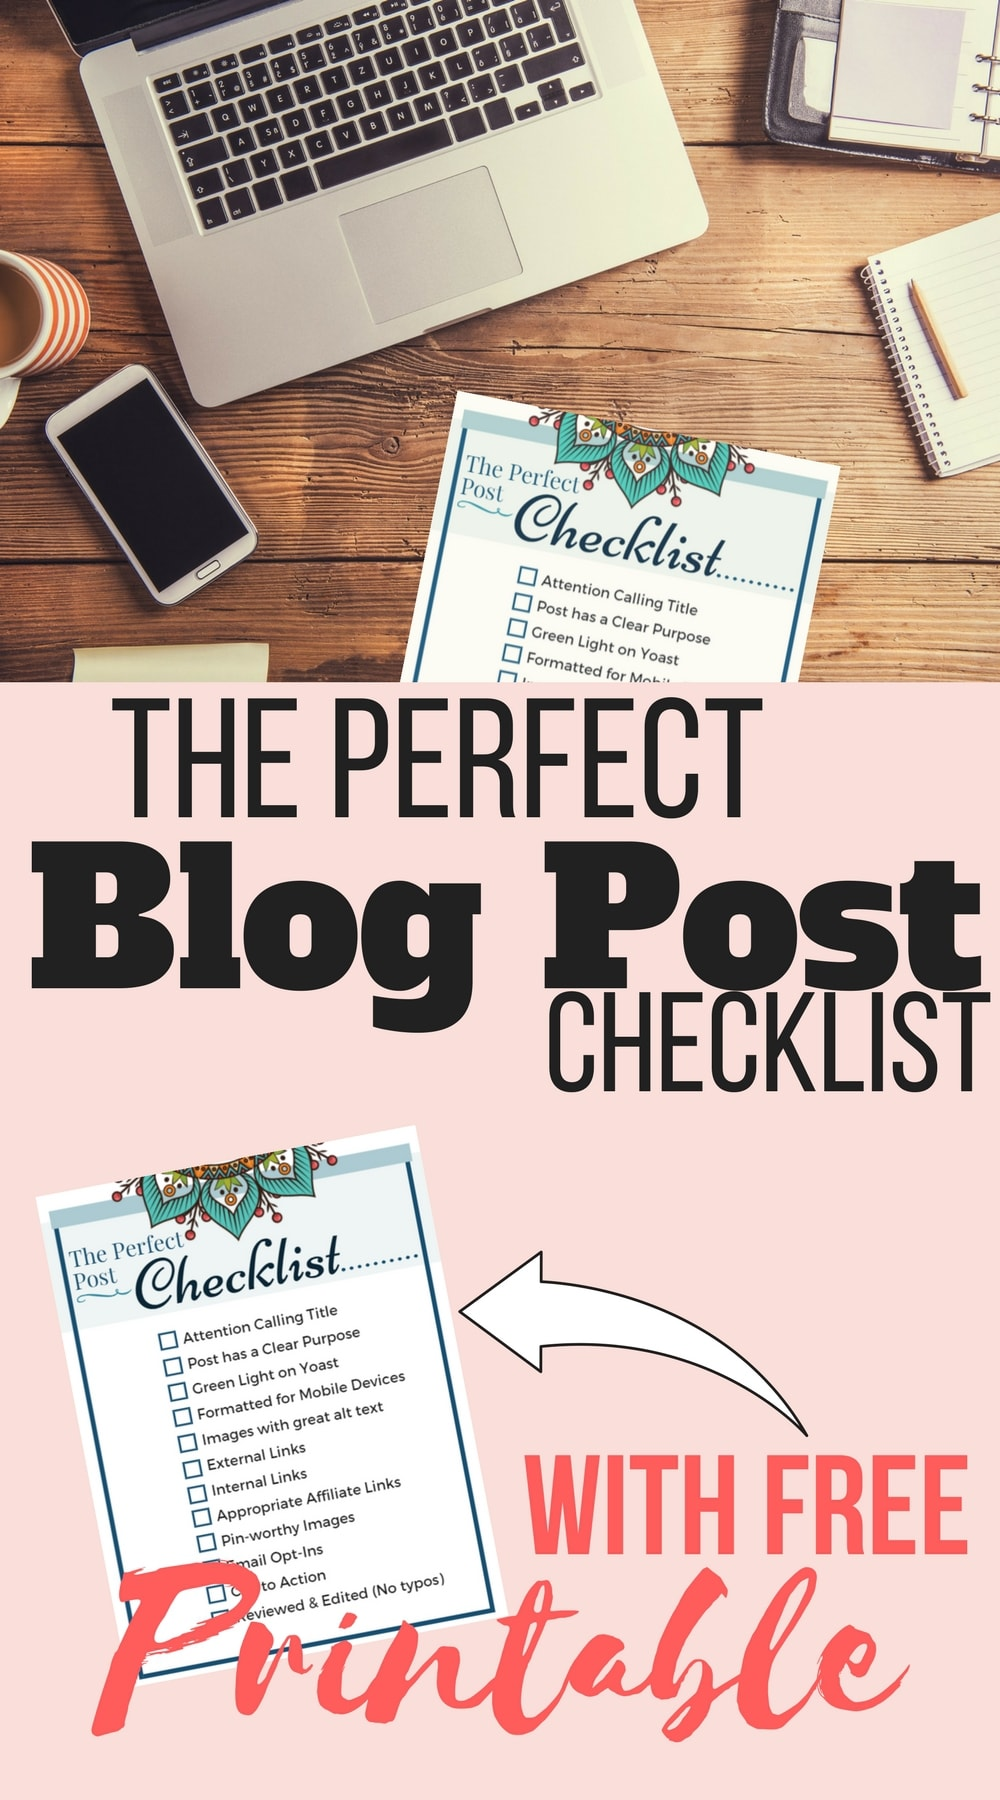 The perfect blog post checklist. Everything you need for a great blog post.